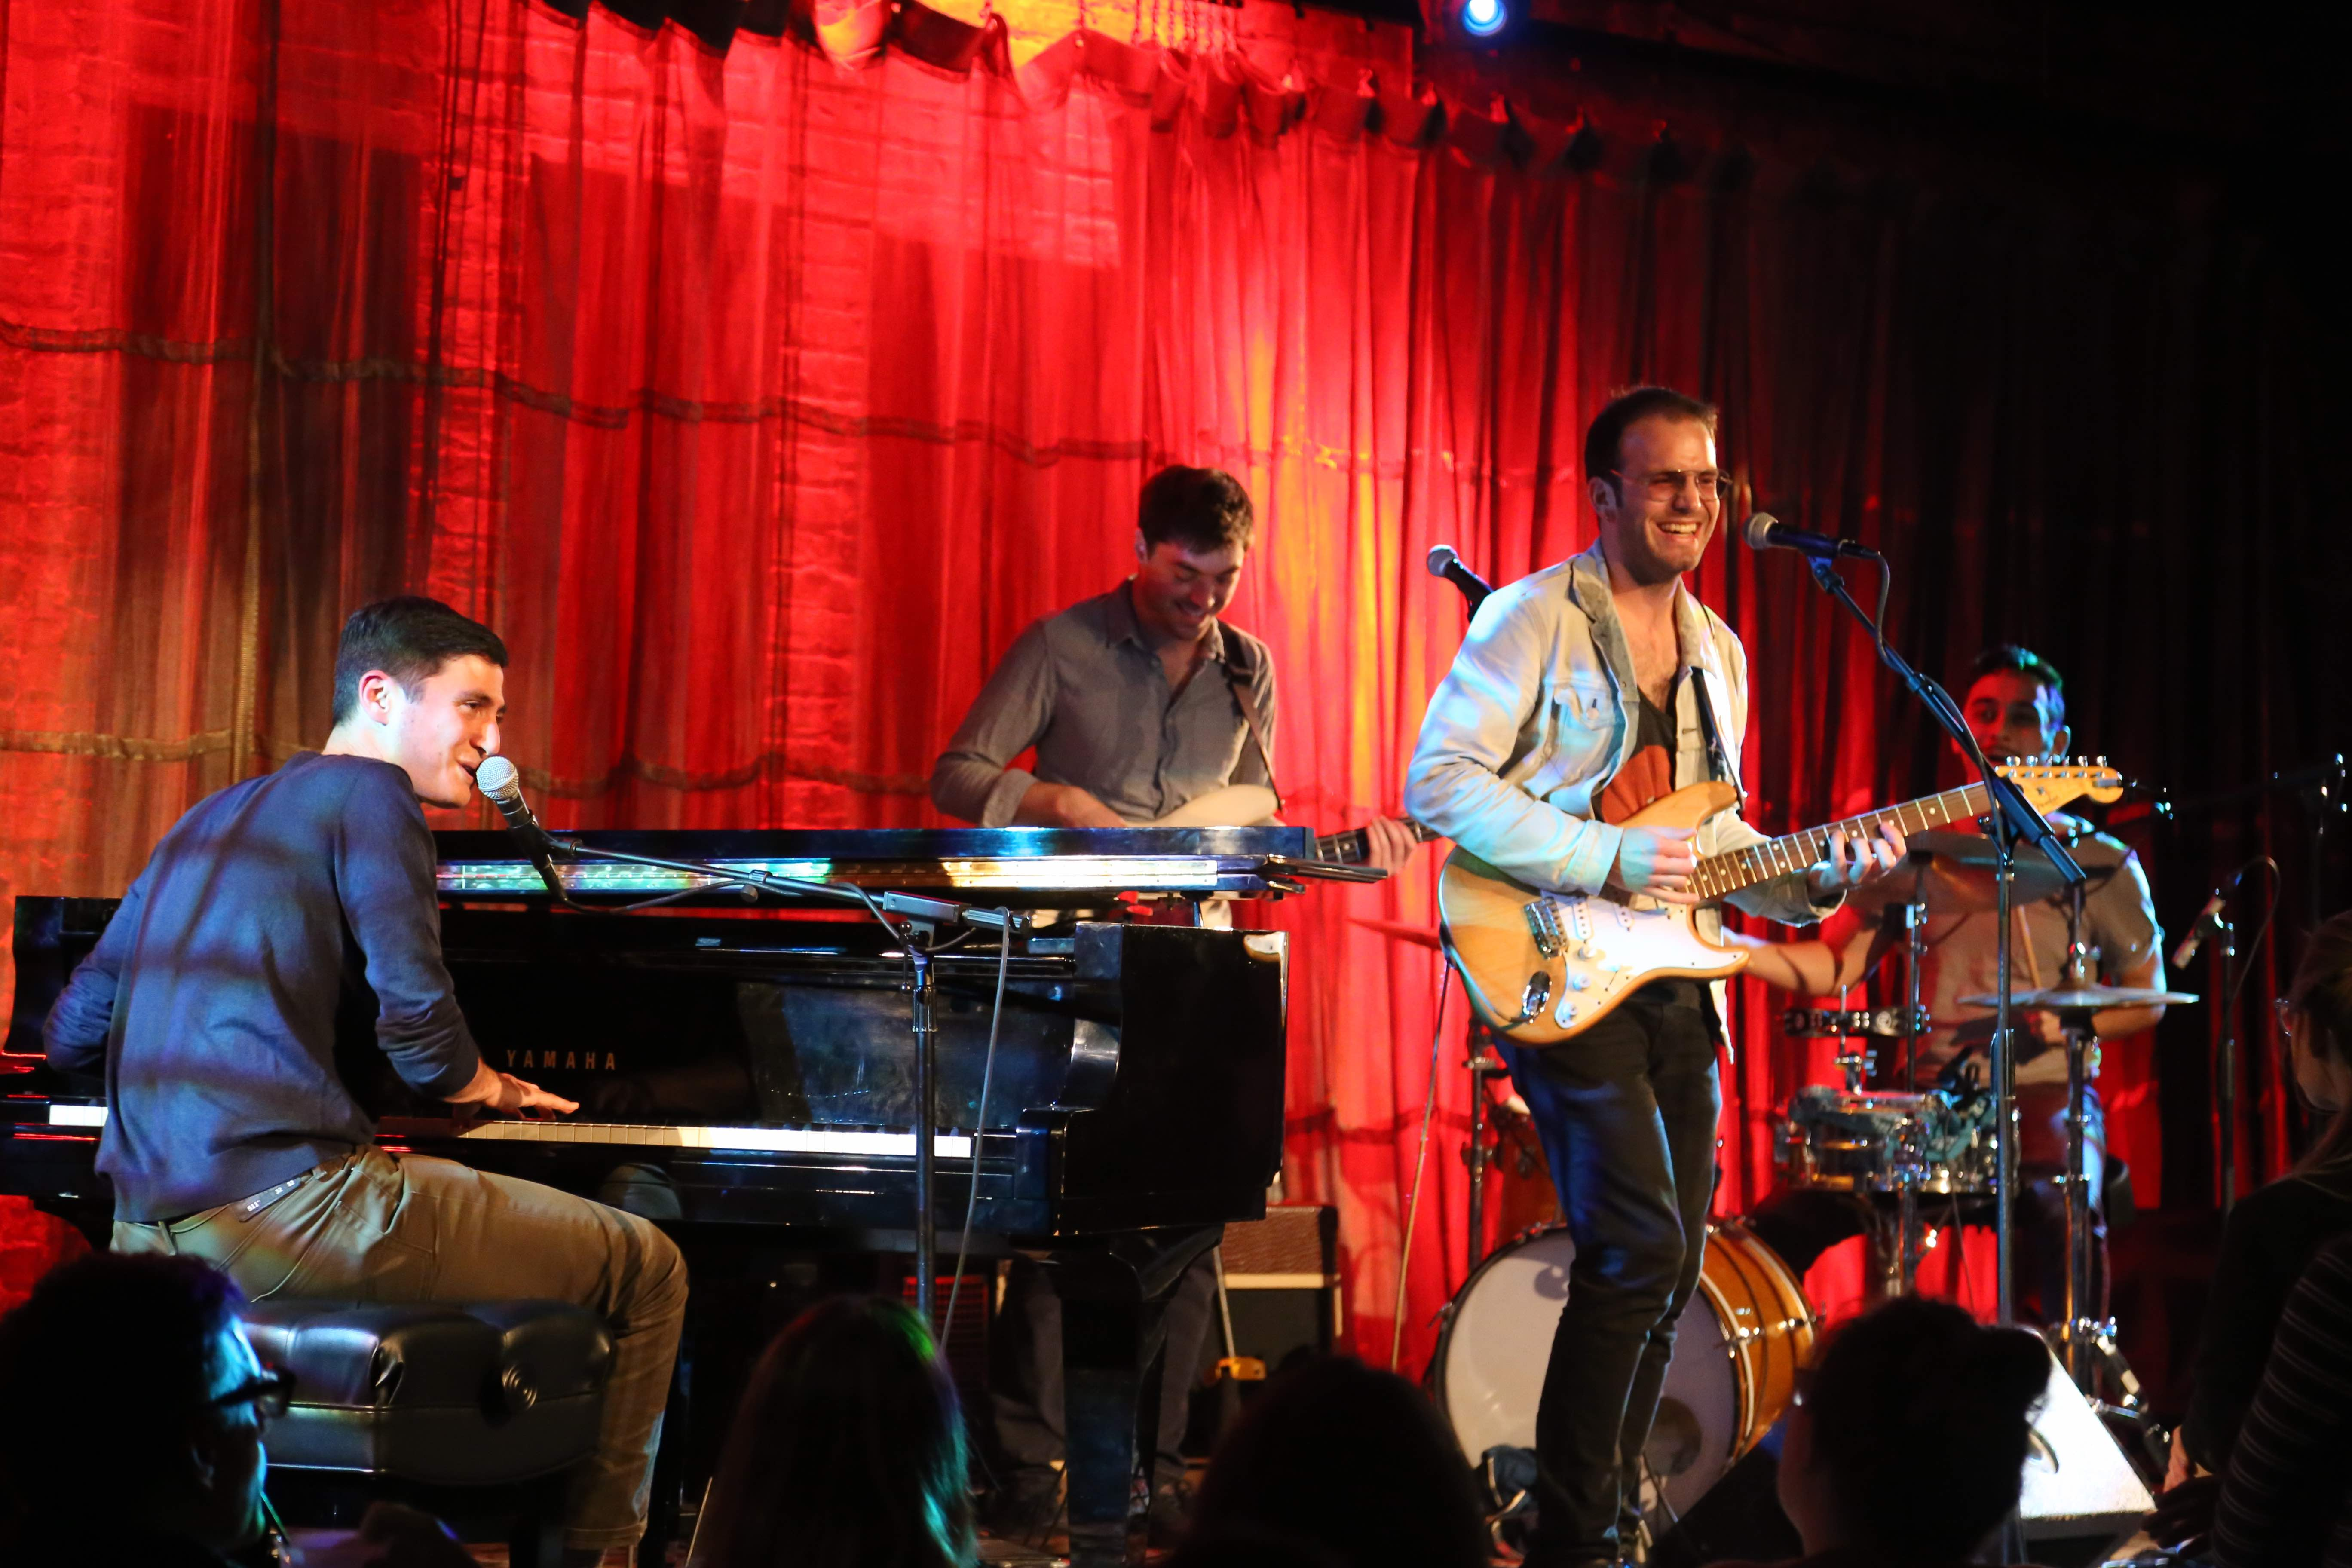 Katzman and his band at Evanston SPACE